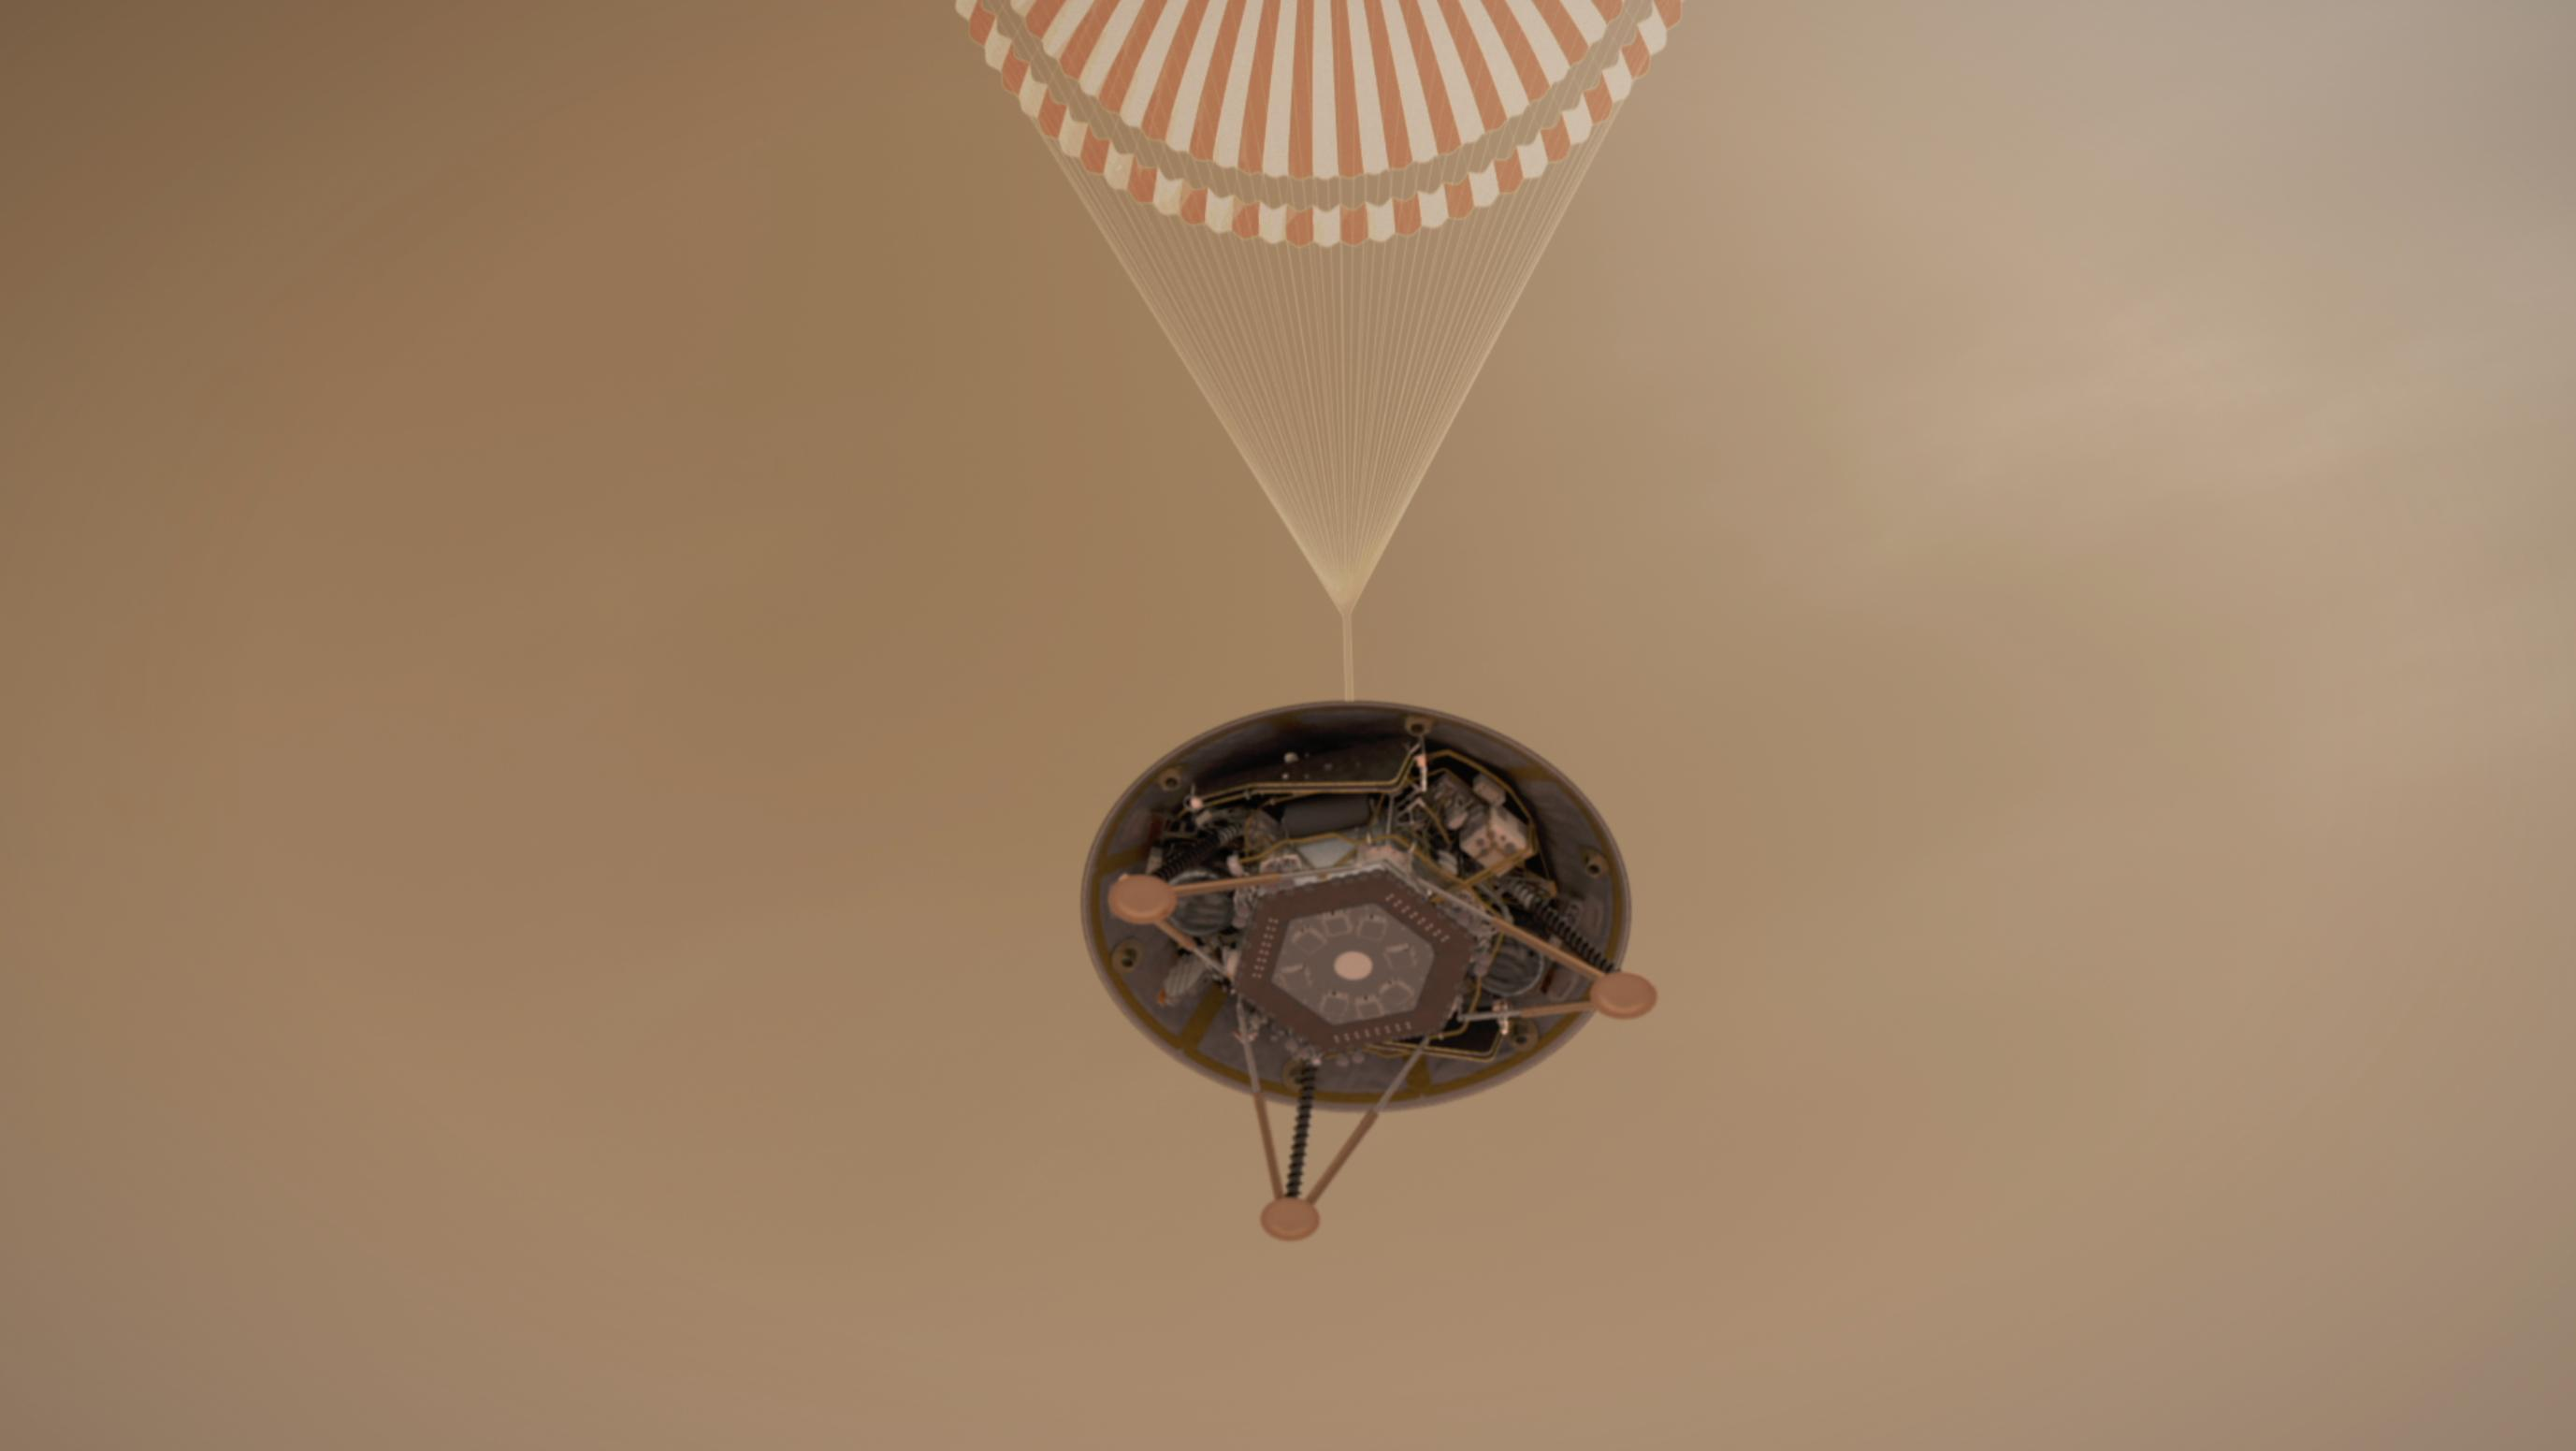 This illustration shows a simulated view of NASAs InSight lander descending towards the surface of Mars on its parachute.